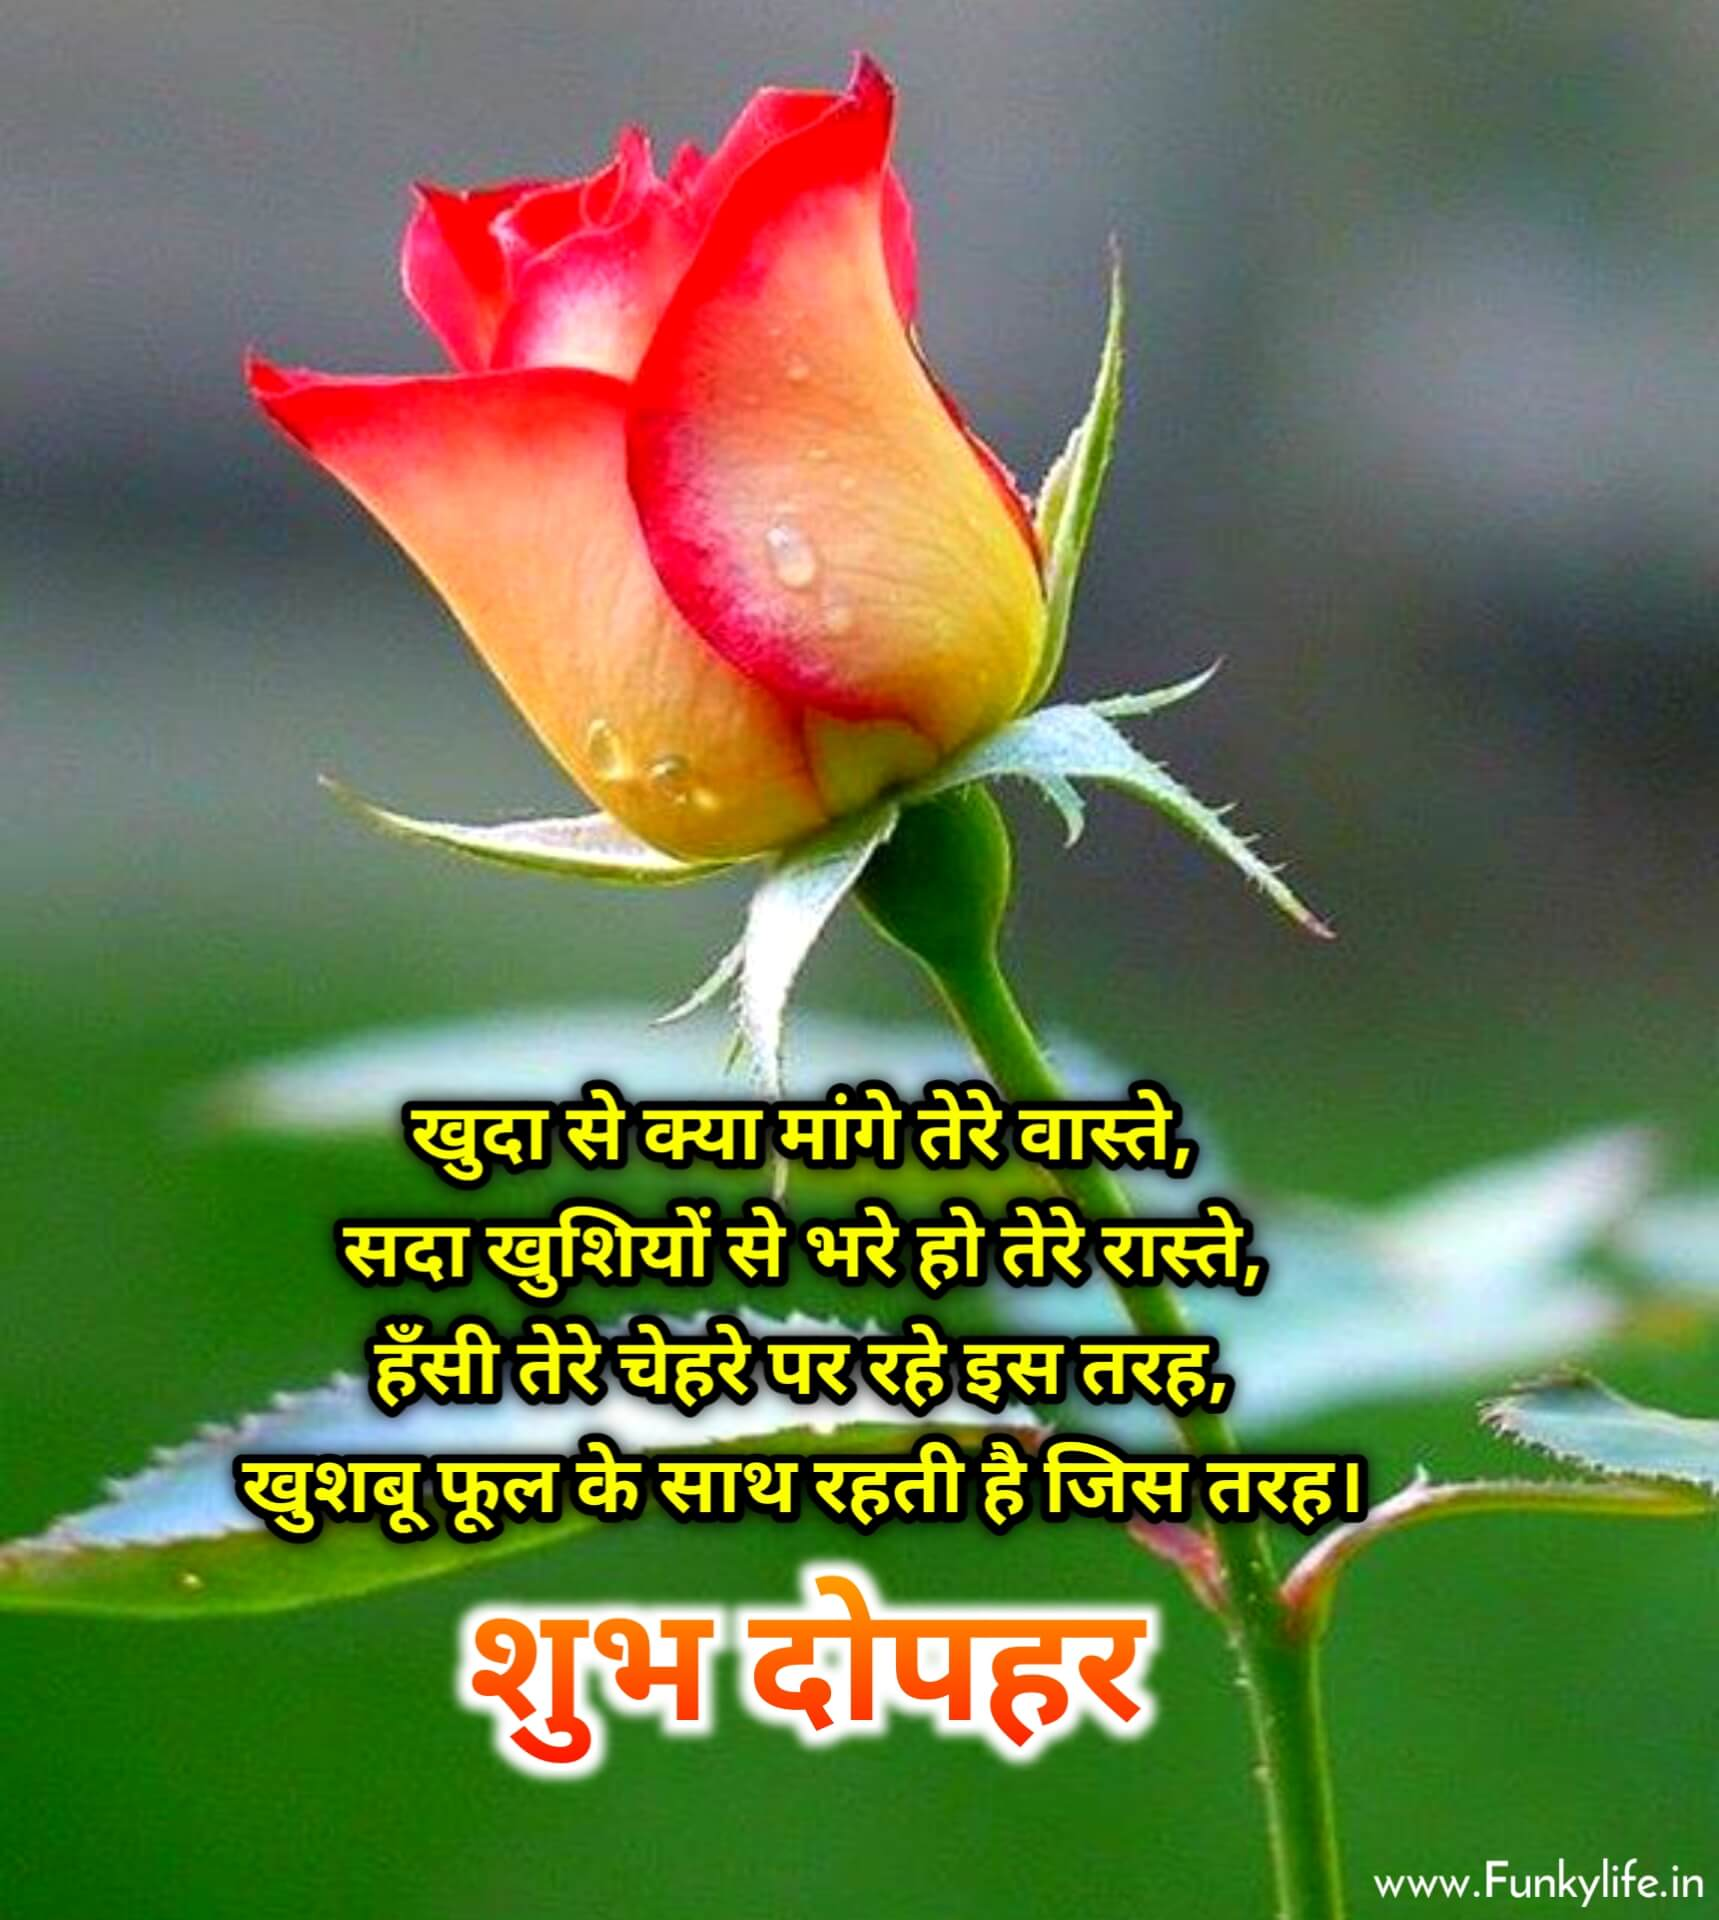 Shubh Dopahar Image with Quote in Hindi